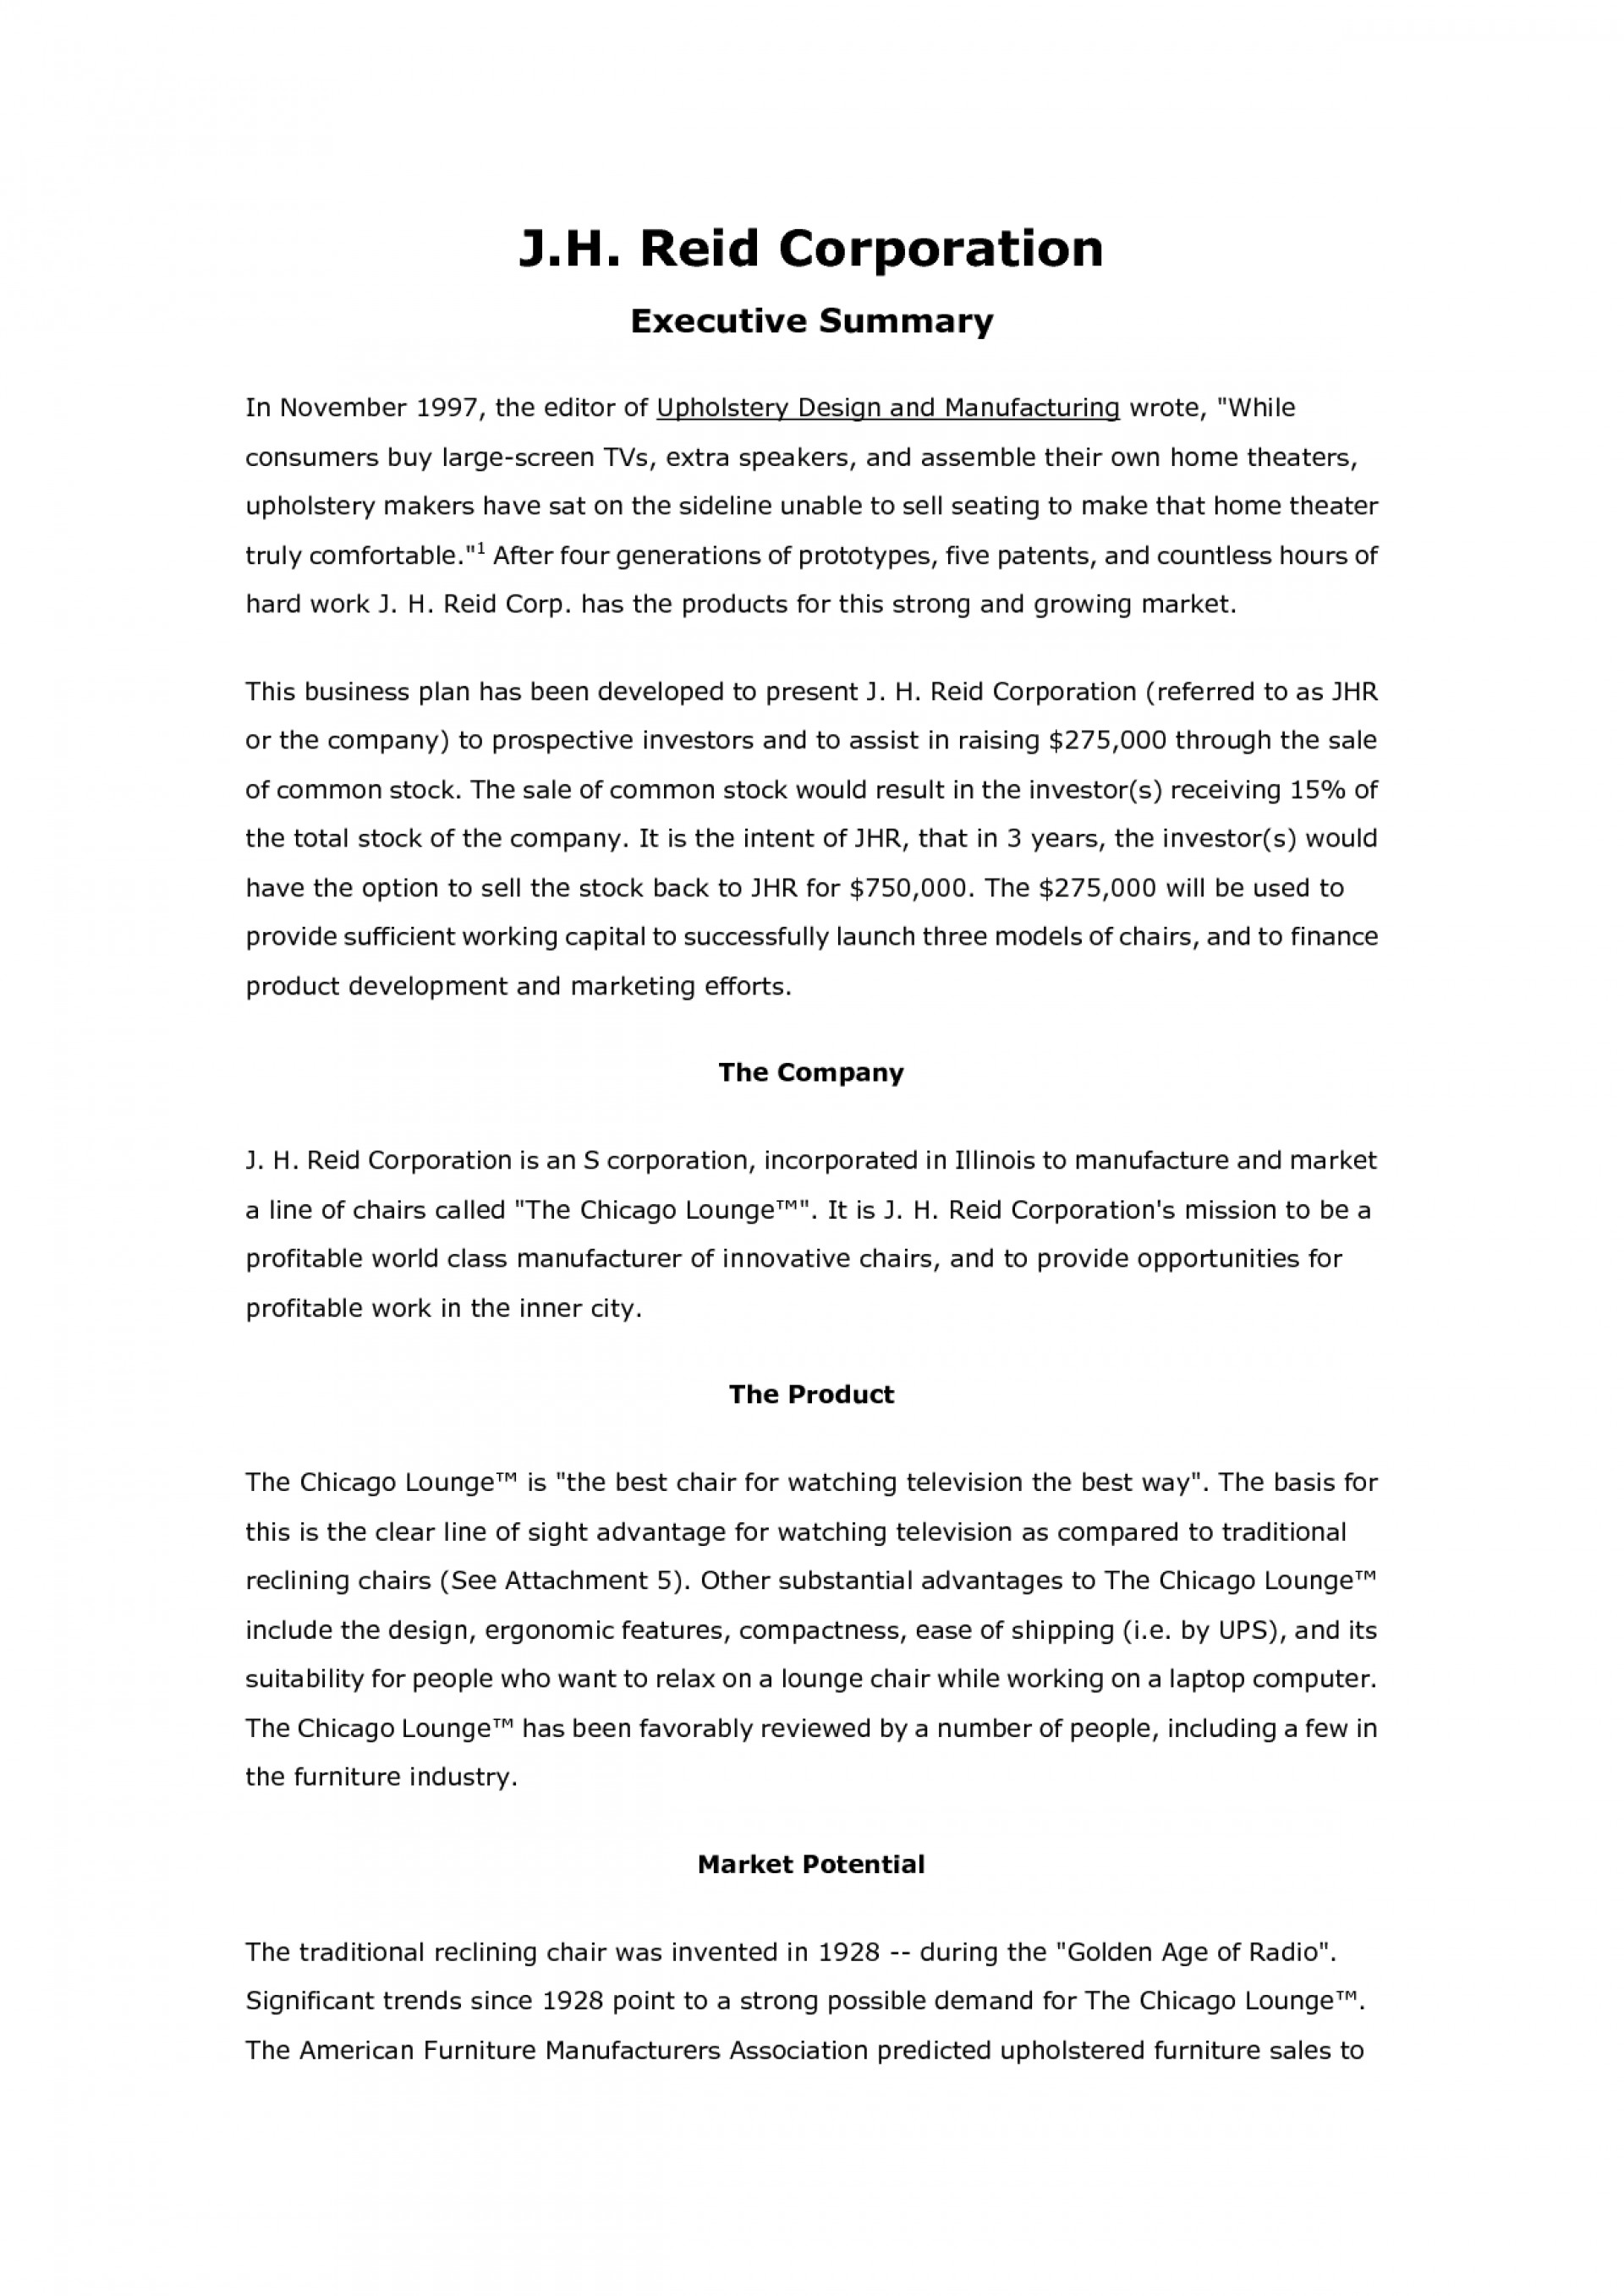 008 Proposal Essays Essay Example Company Writing Reviews Legit Service Business Plan S Reddit Are There Any Services Uk Awesome Modest Examples On Bullying 1920